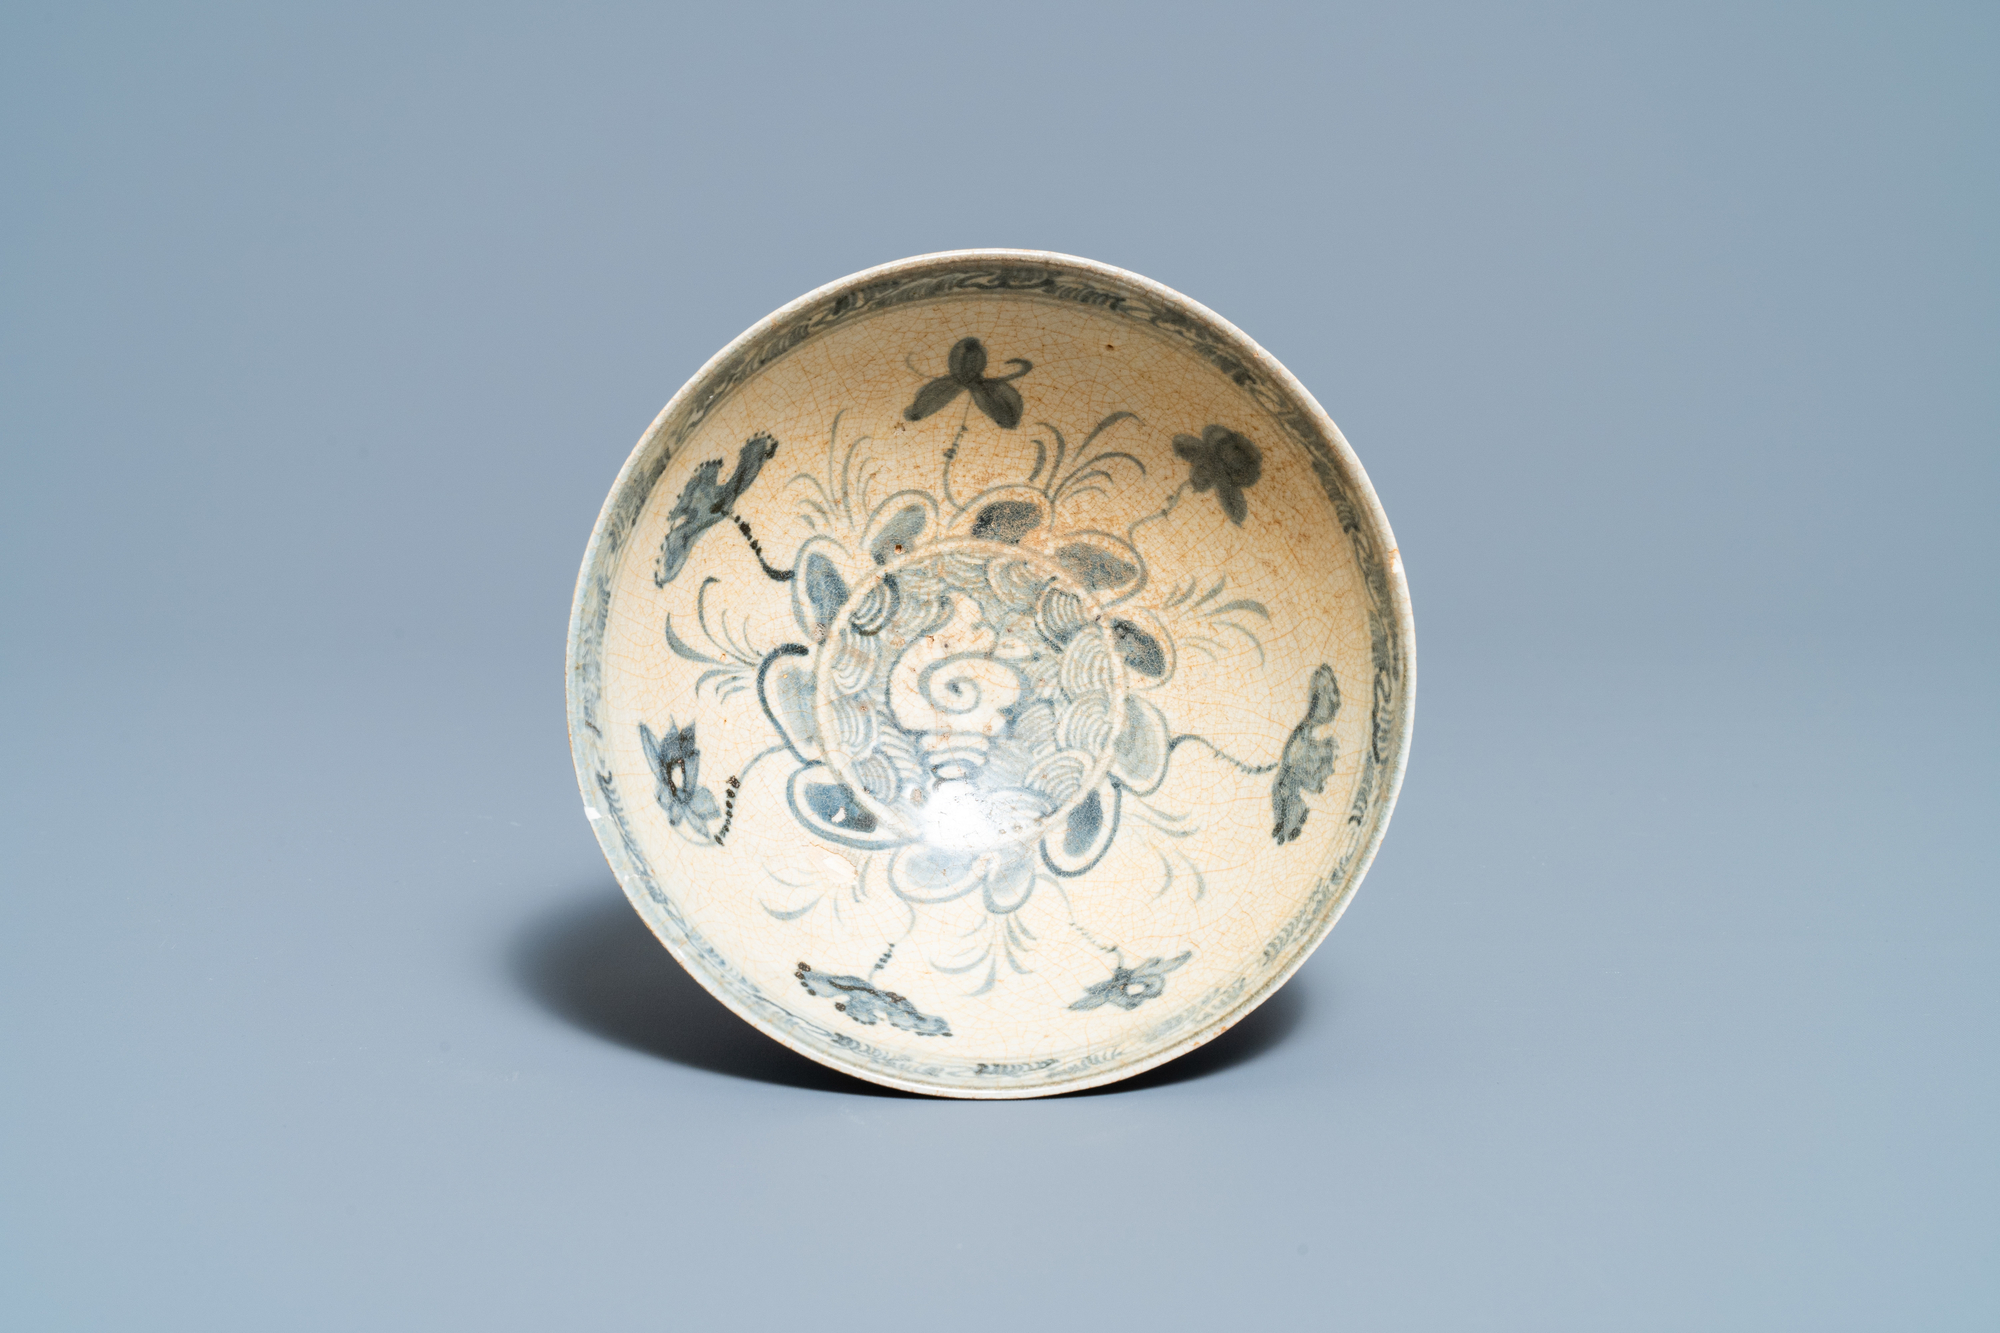 Four blue and white Vietnamese or Annamese ceramics and a Chinese jarlet, 15/16th C. - Image 5 of 12